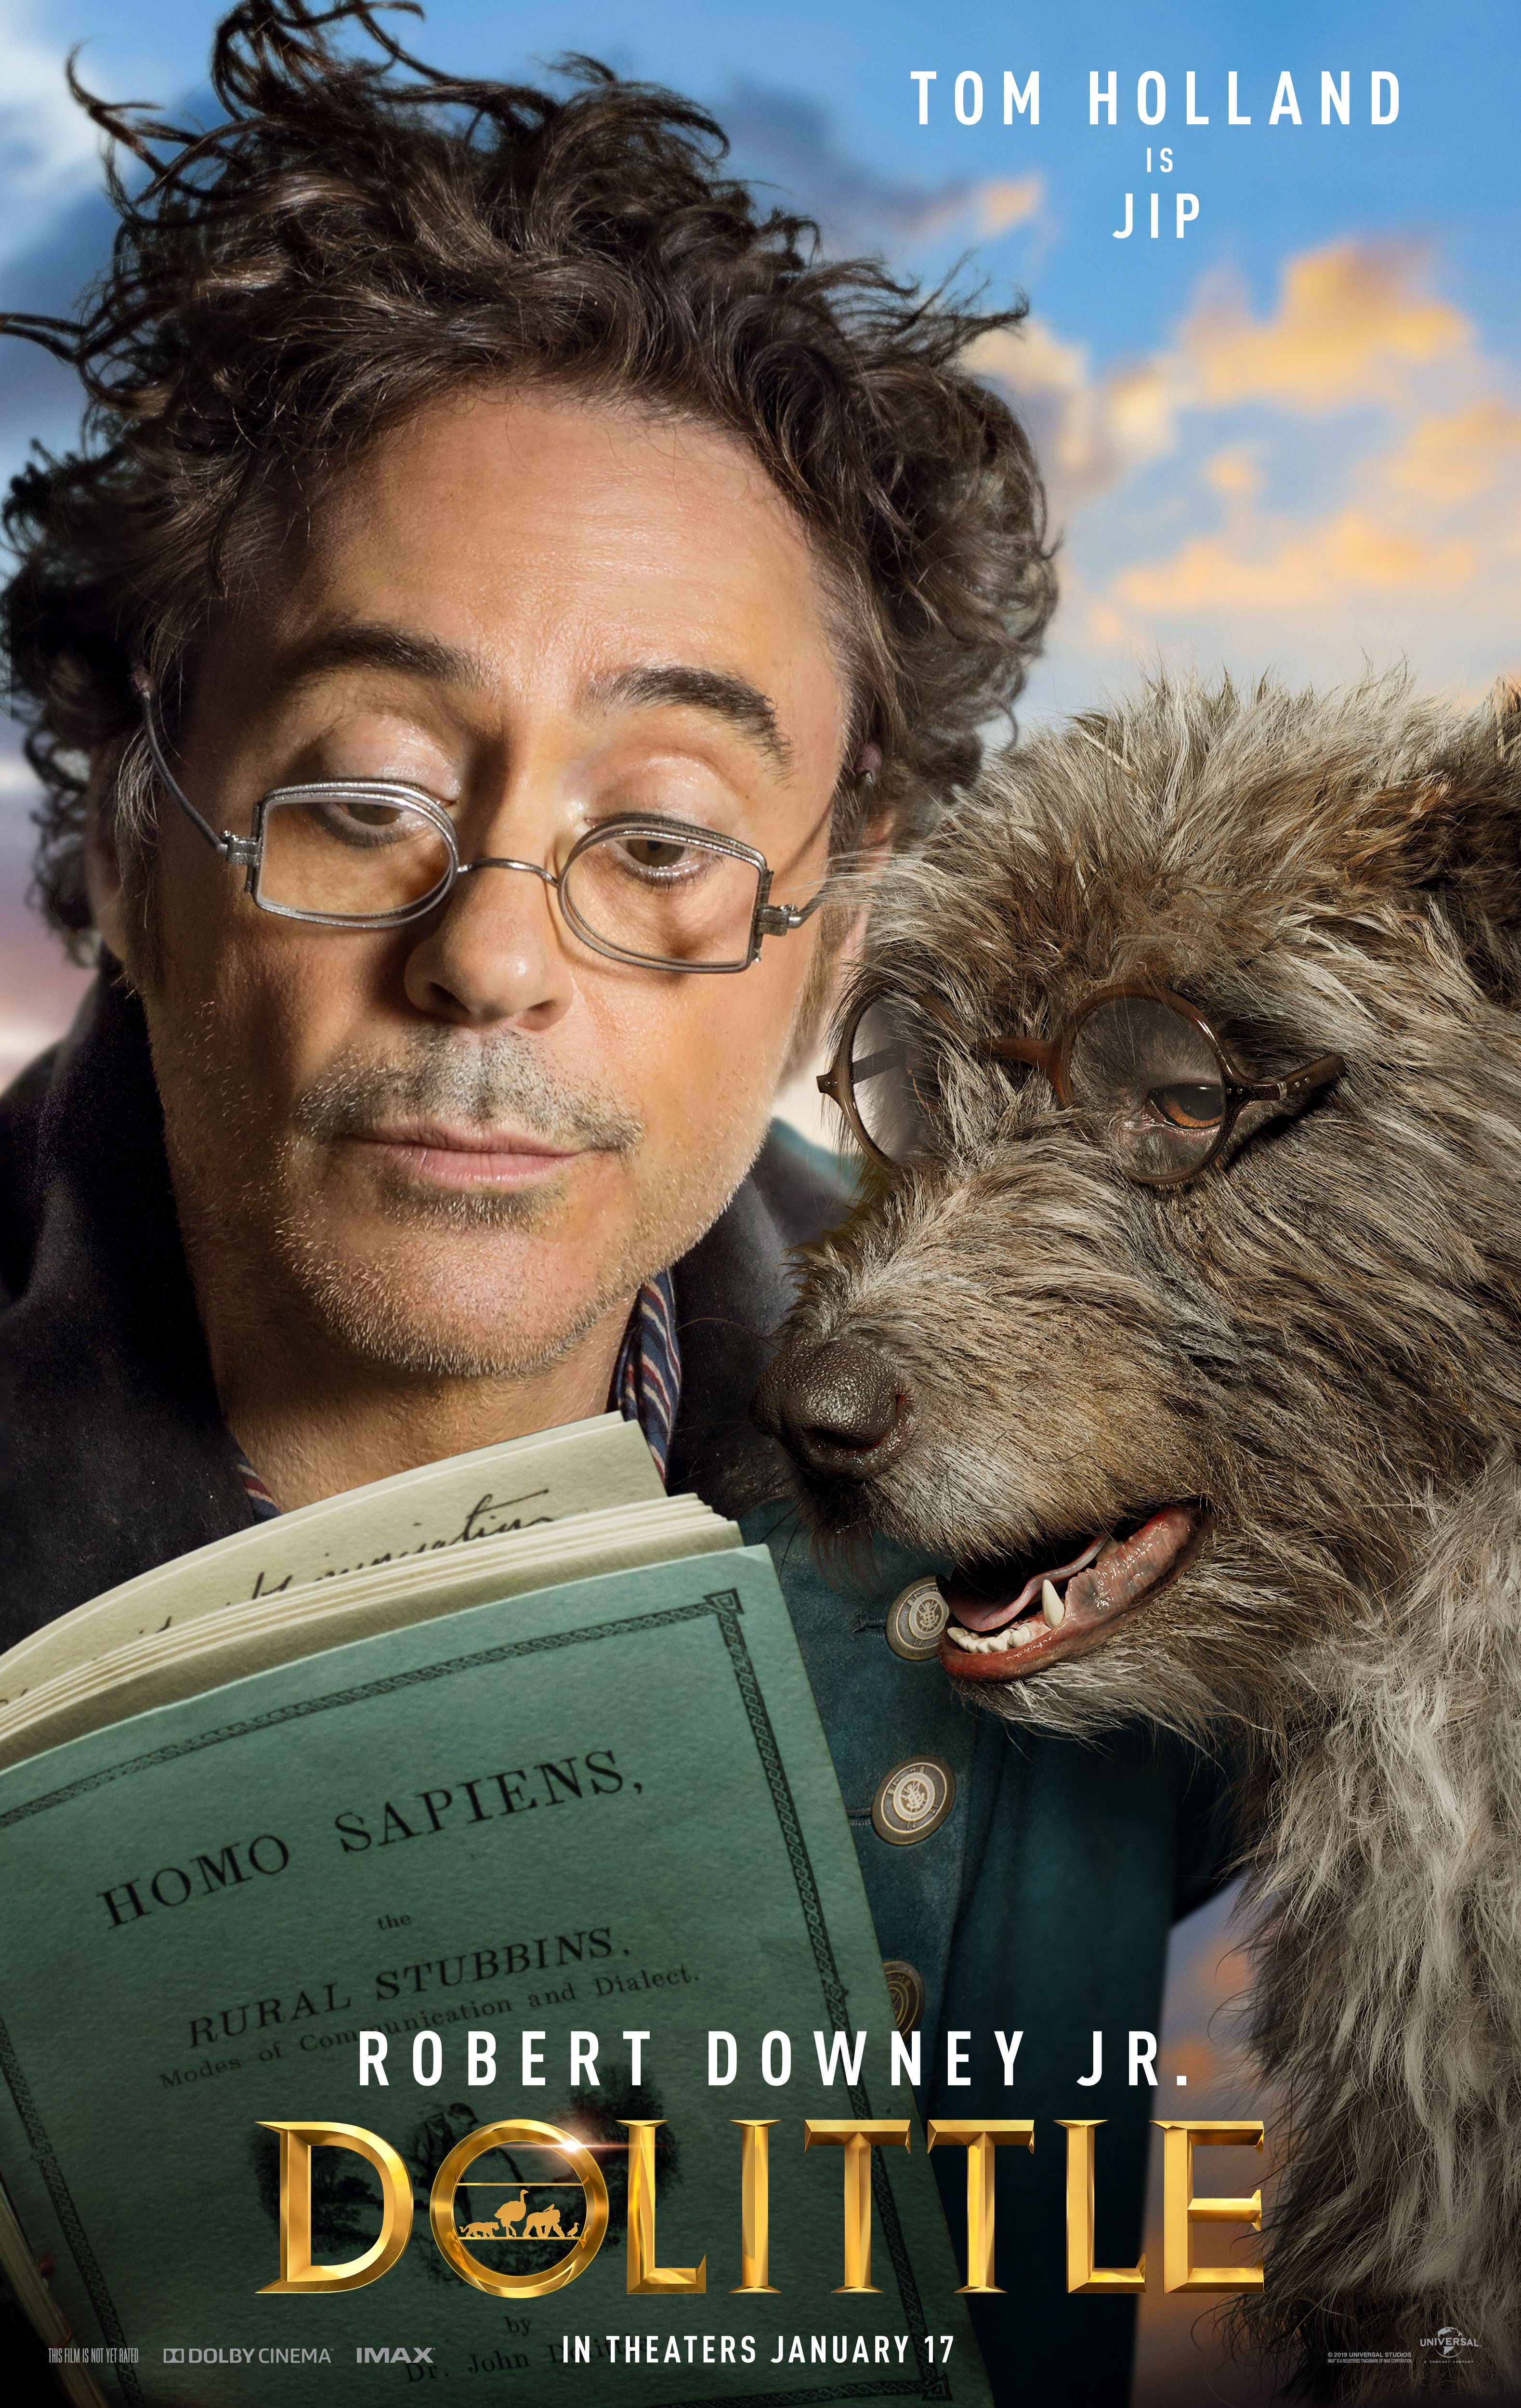 What A Wonderful World 10 X Dolittle 2020 Movie Posters Variants W Robert Downey Jr Epicheroes Movie Trailers Toys Tv Video Games News Art Downey Junior Robert Downey Jr Dr Dolittle